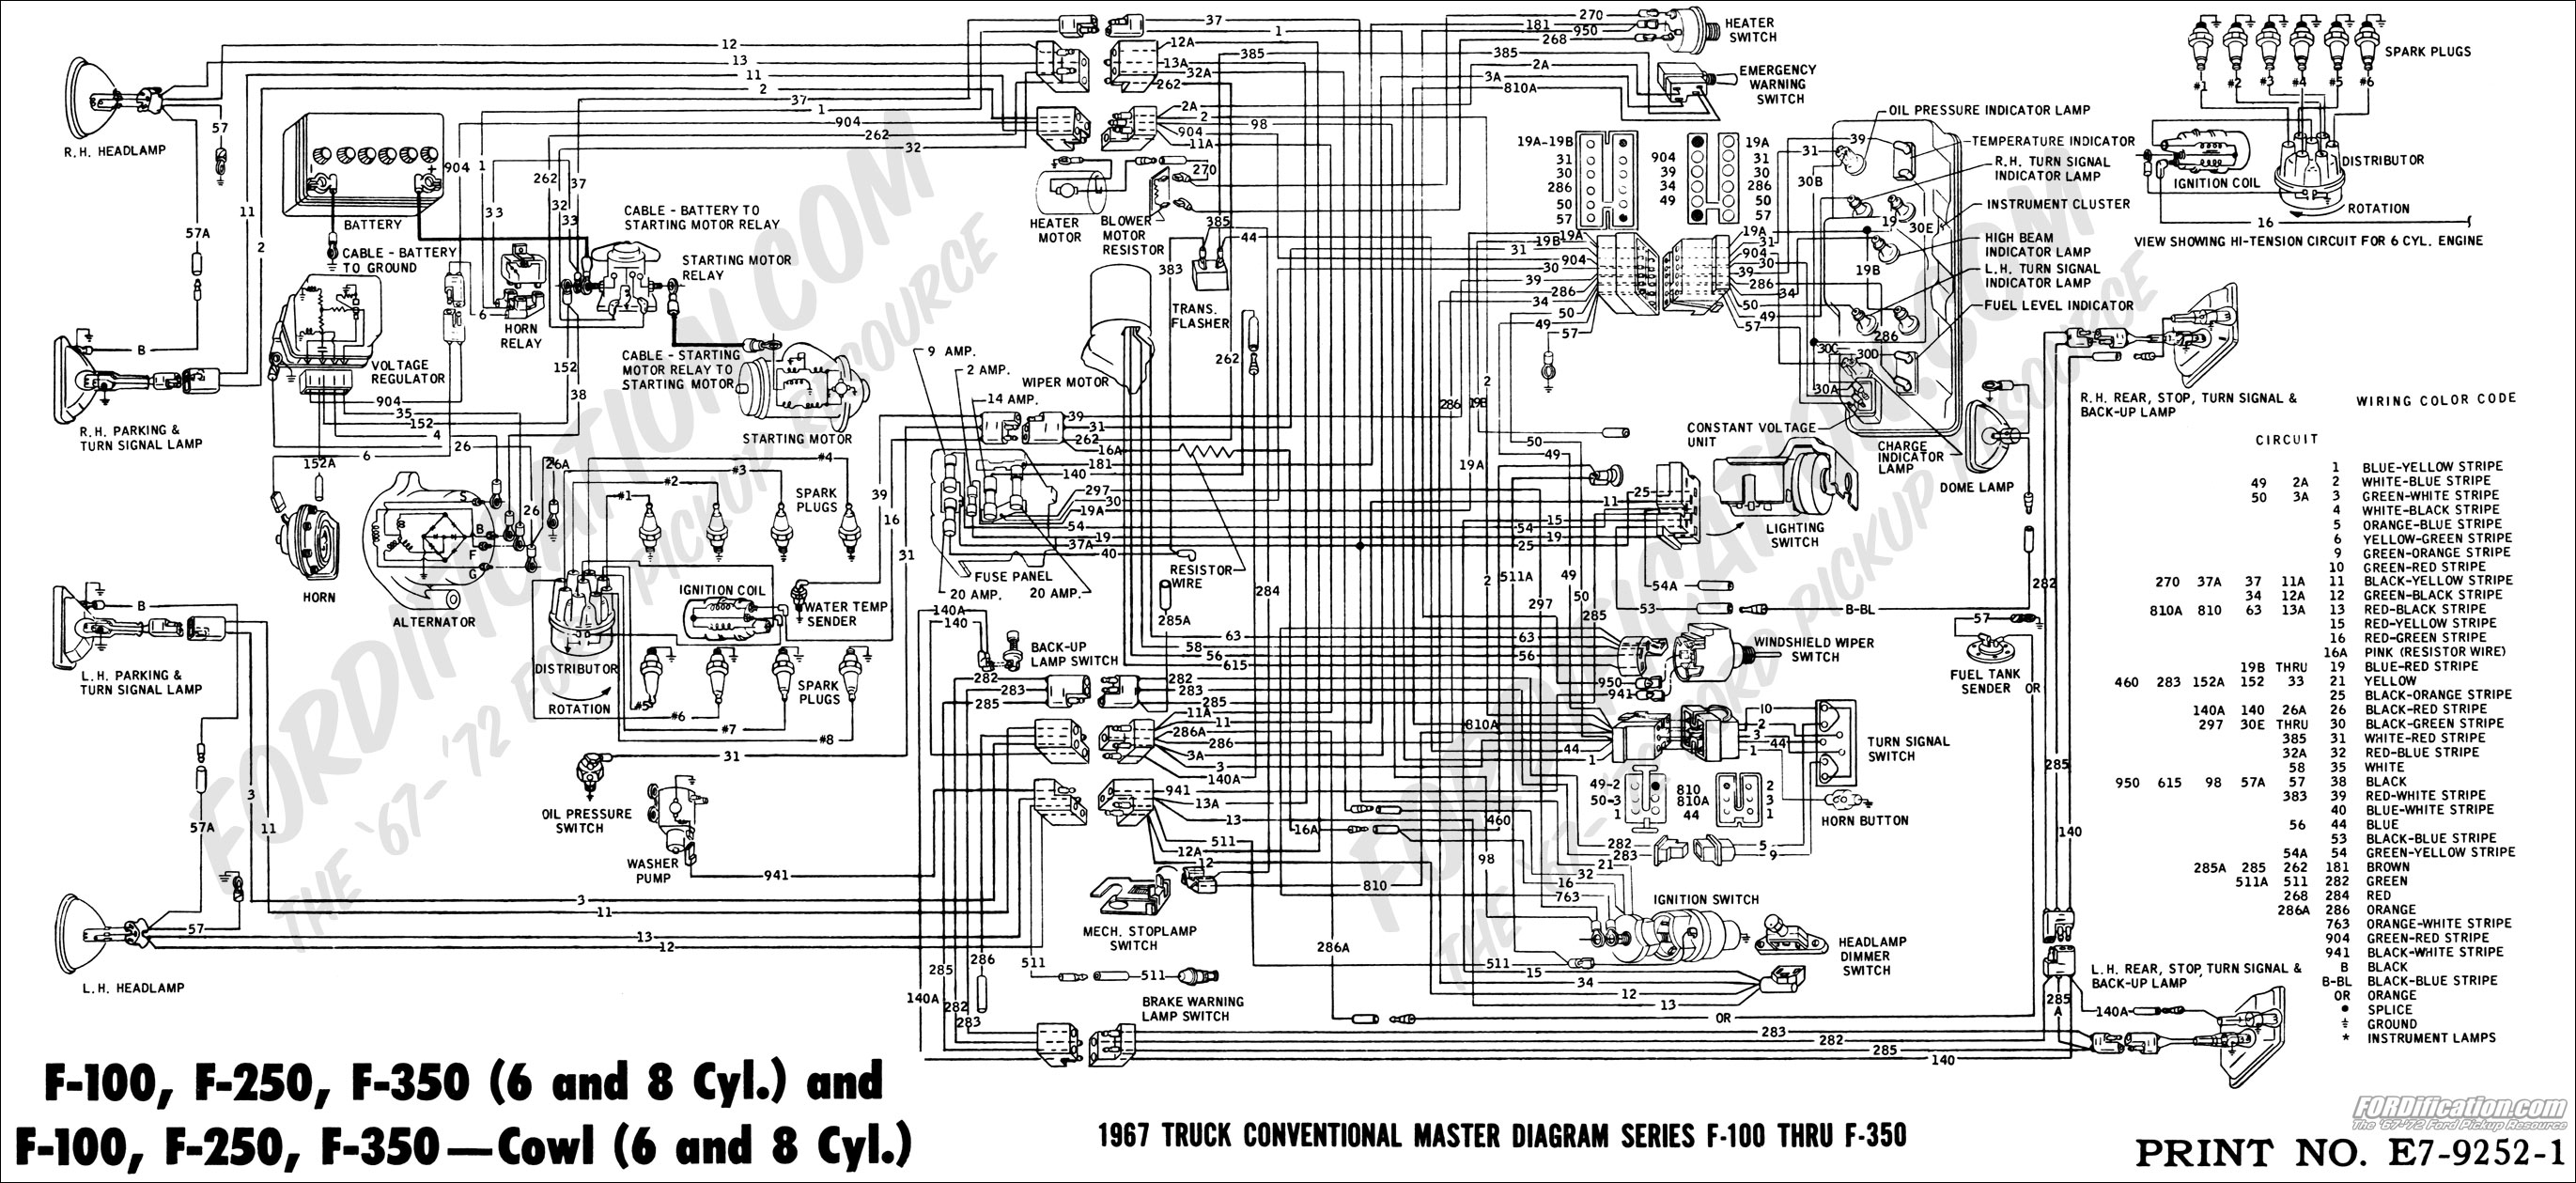 ford truck technical drawings and schematics - section h - wiring,Wiring diagram,Wiring Diagrams Ford